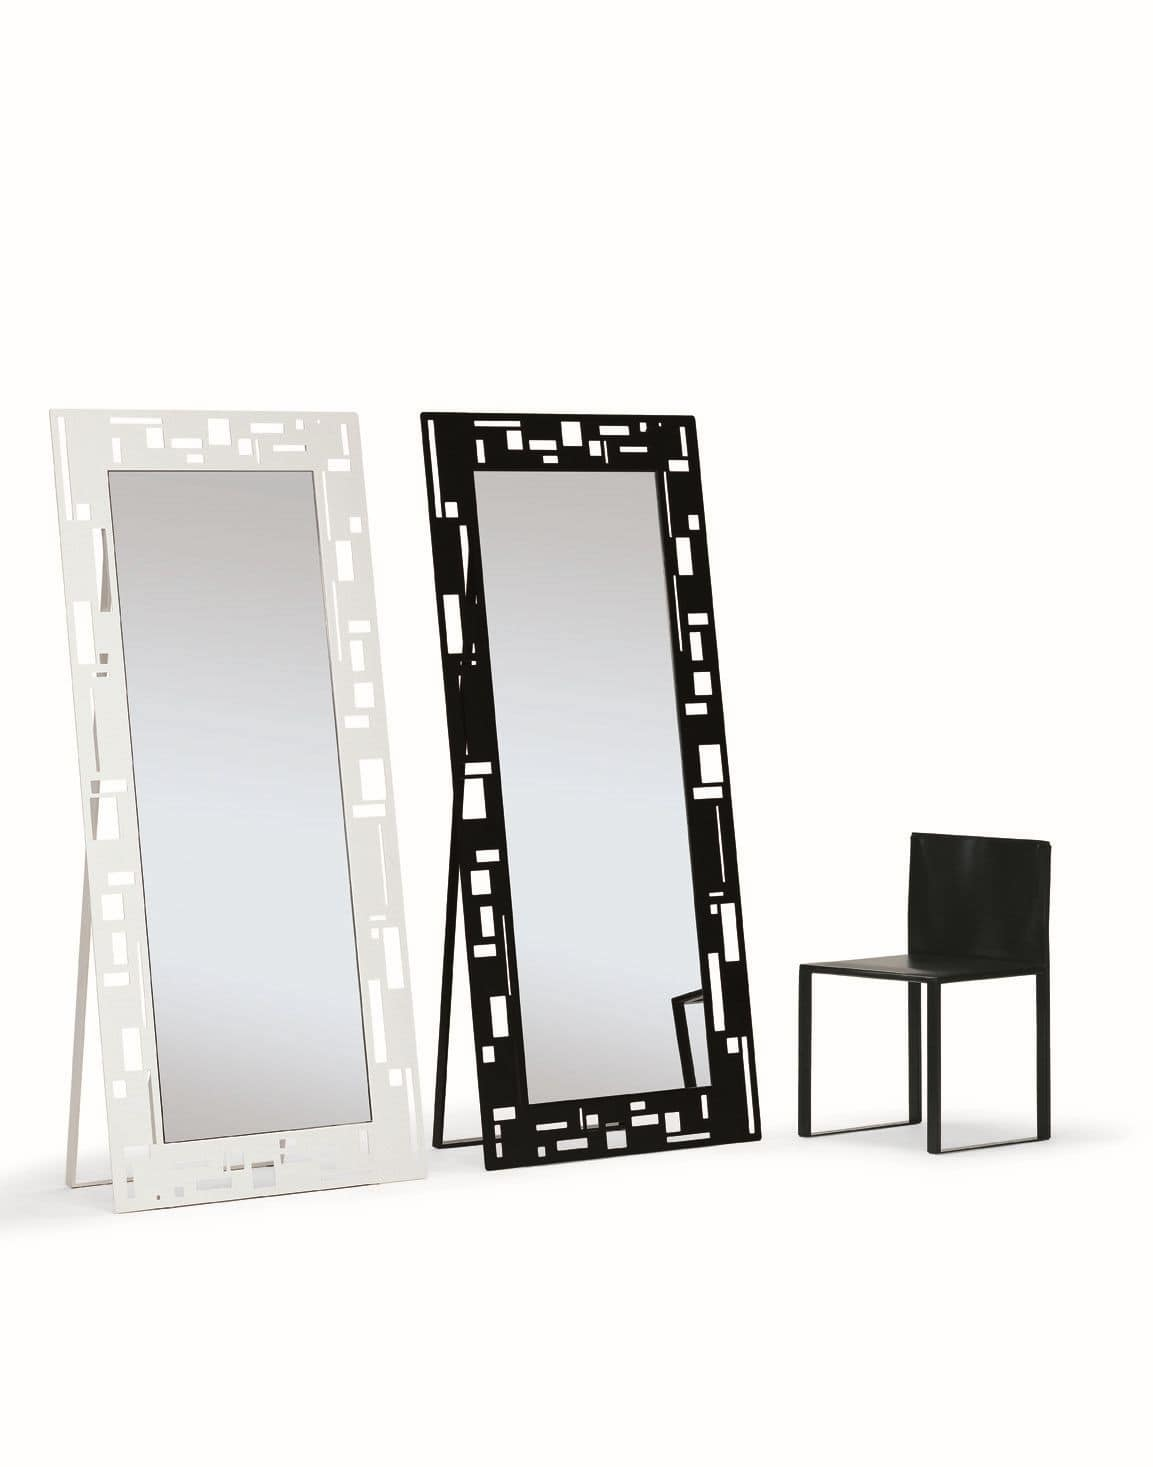 Otto, Rectangular mirrors, with modern design, ideal for shops and home